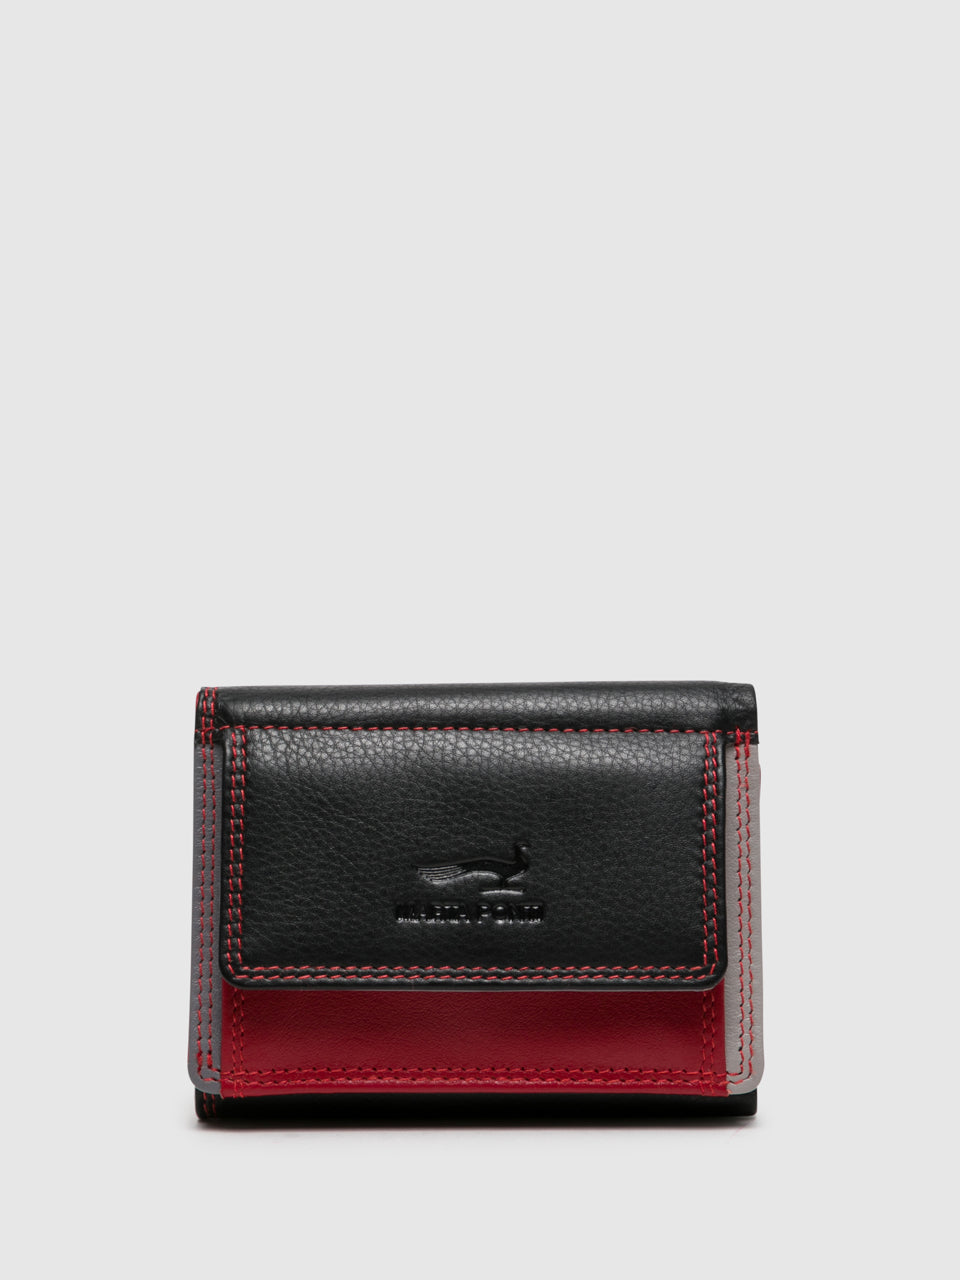 MARTA PONTI Red Black Card Holder